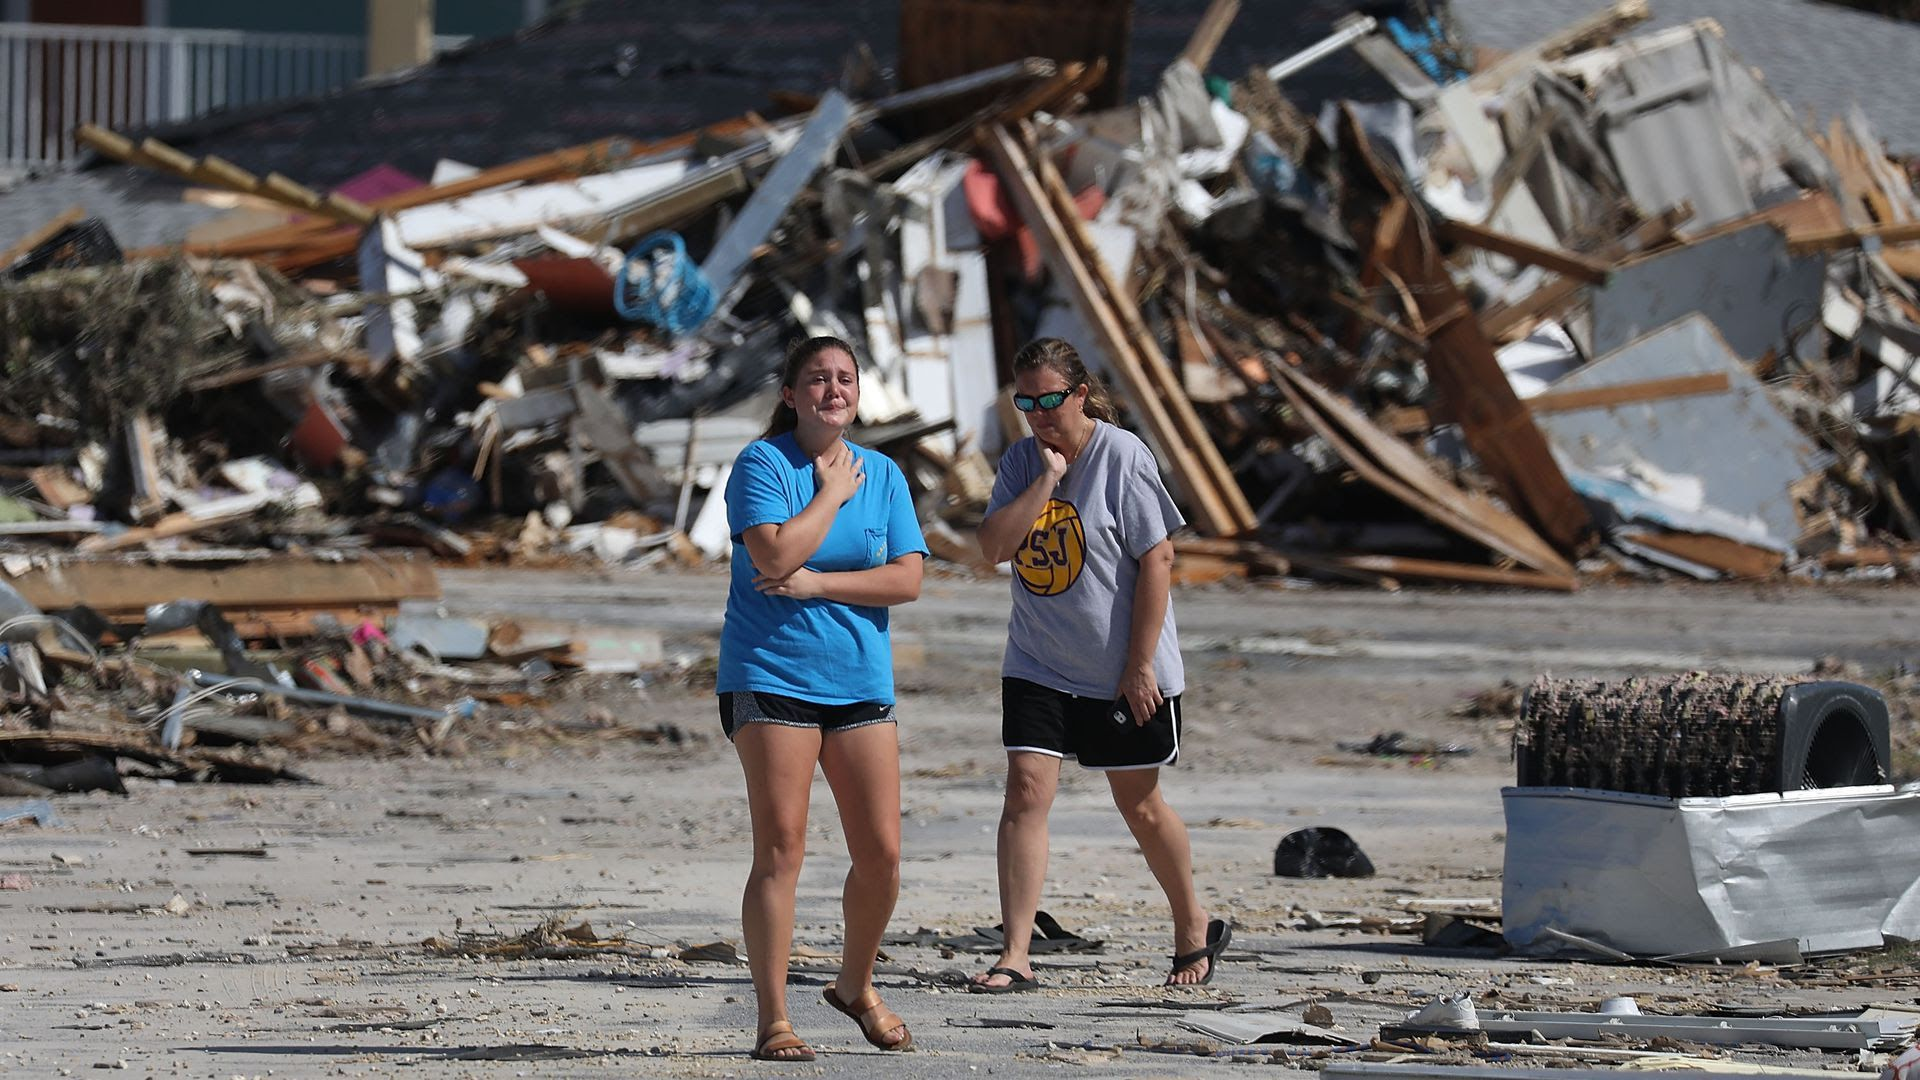 Two people stand among wreckage from Hurricane Michael.